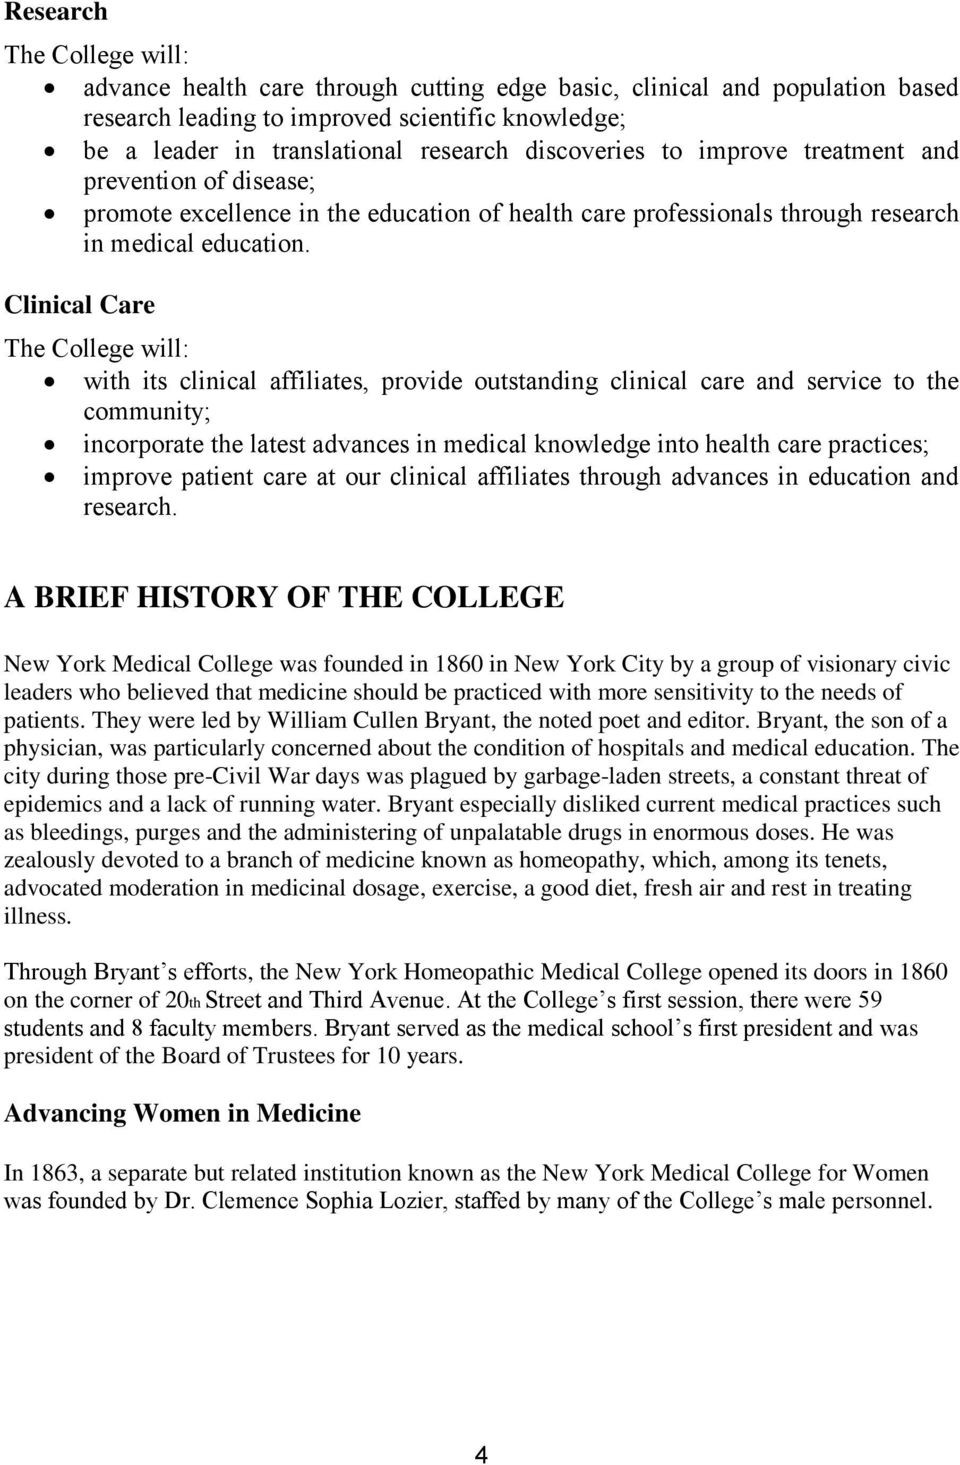 Clinical Care The College will: with its clinical affiliates, provide outstanding clinical care and service to the community; incorporate the latest advances in medical knowledge into health care